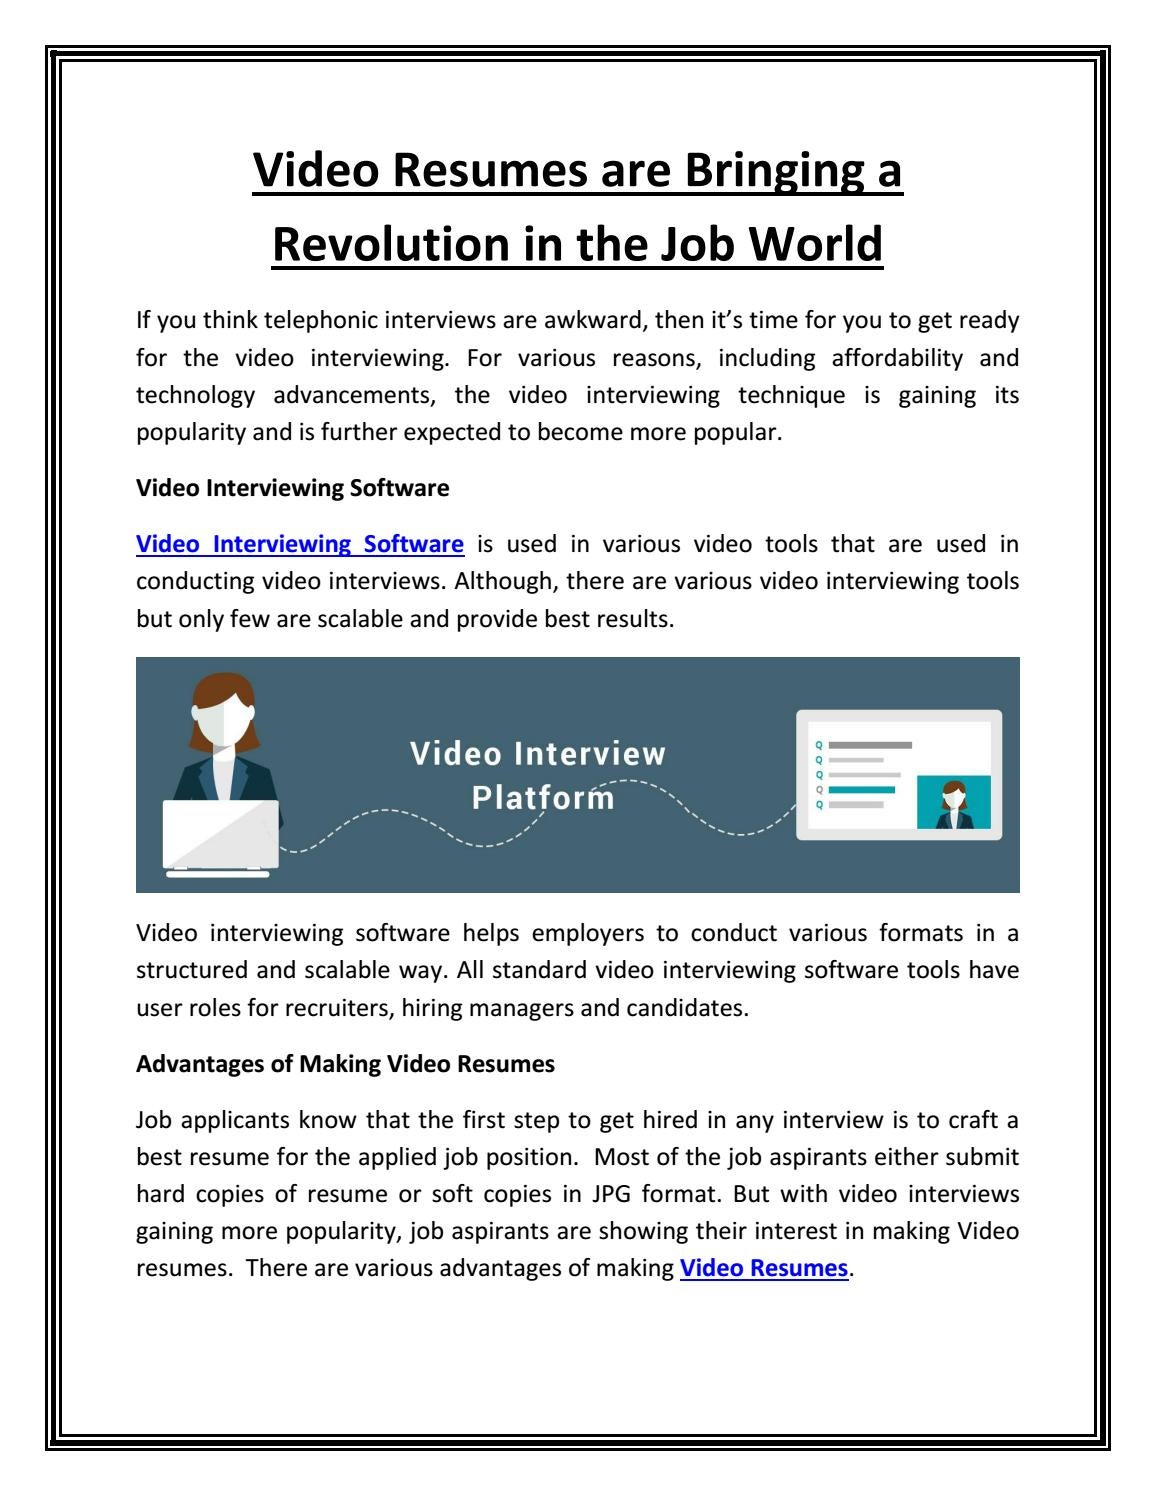 Video Resumes Are Bringing A Revolution In The Job World By